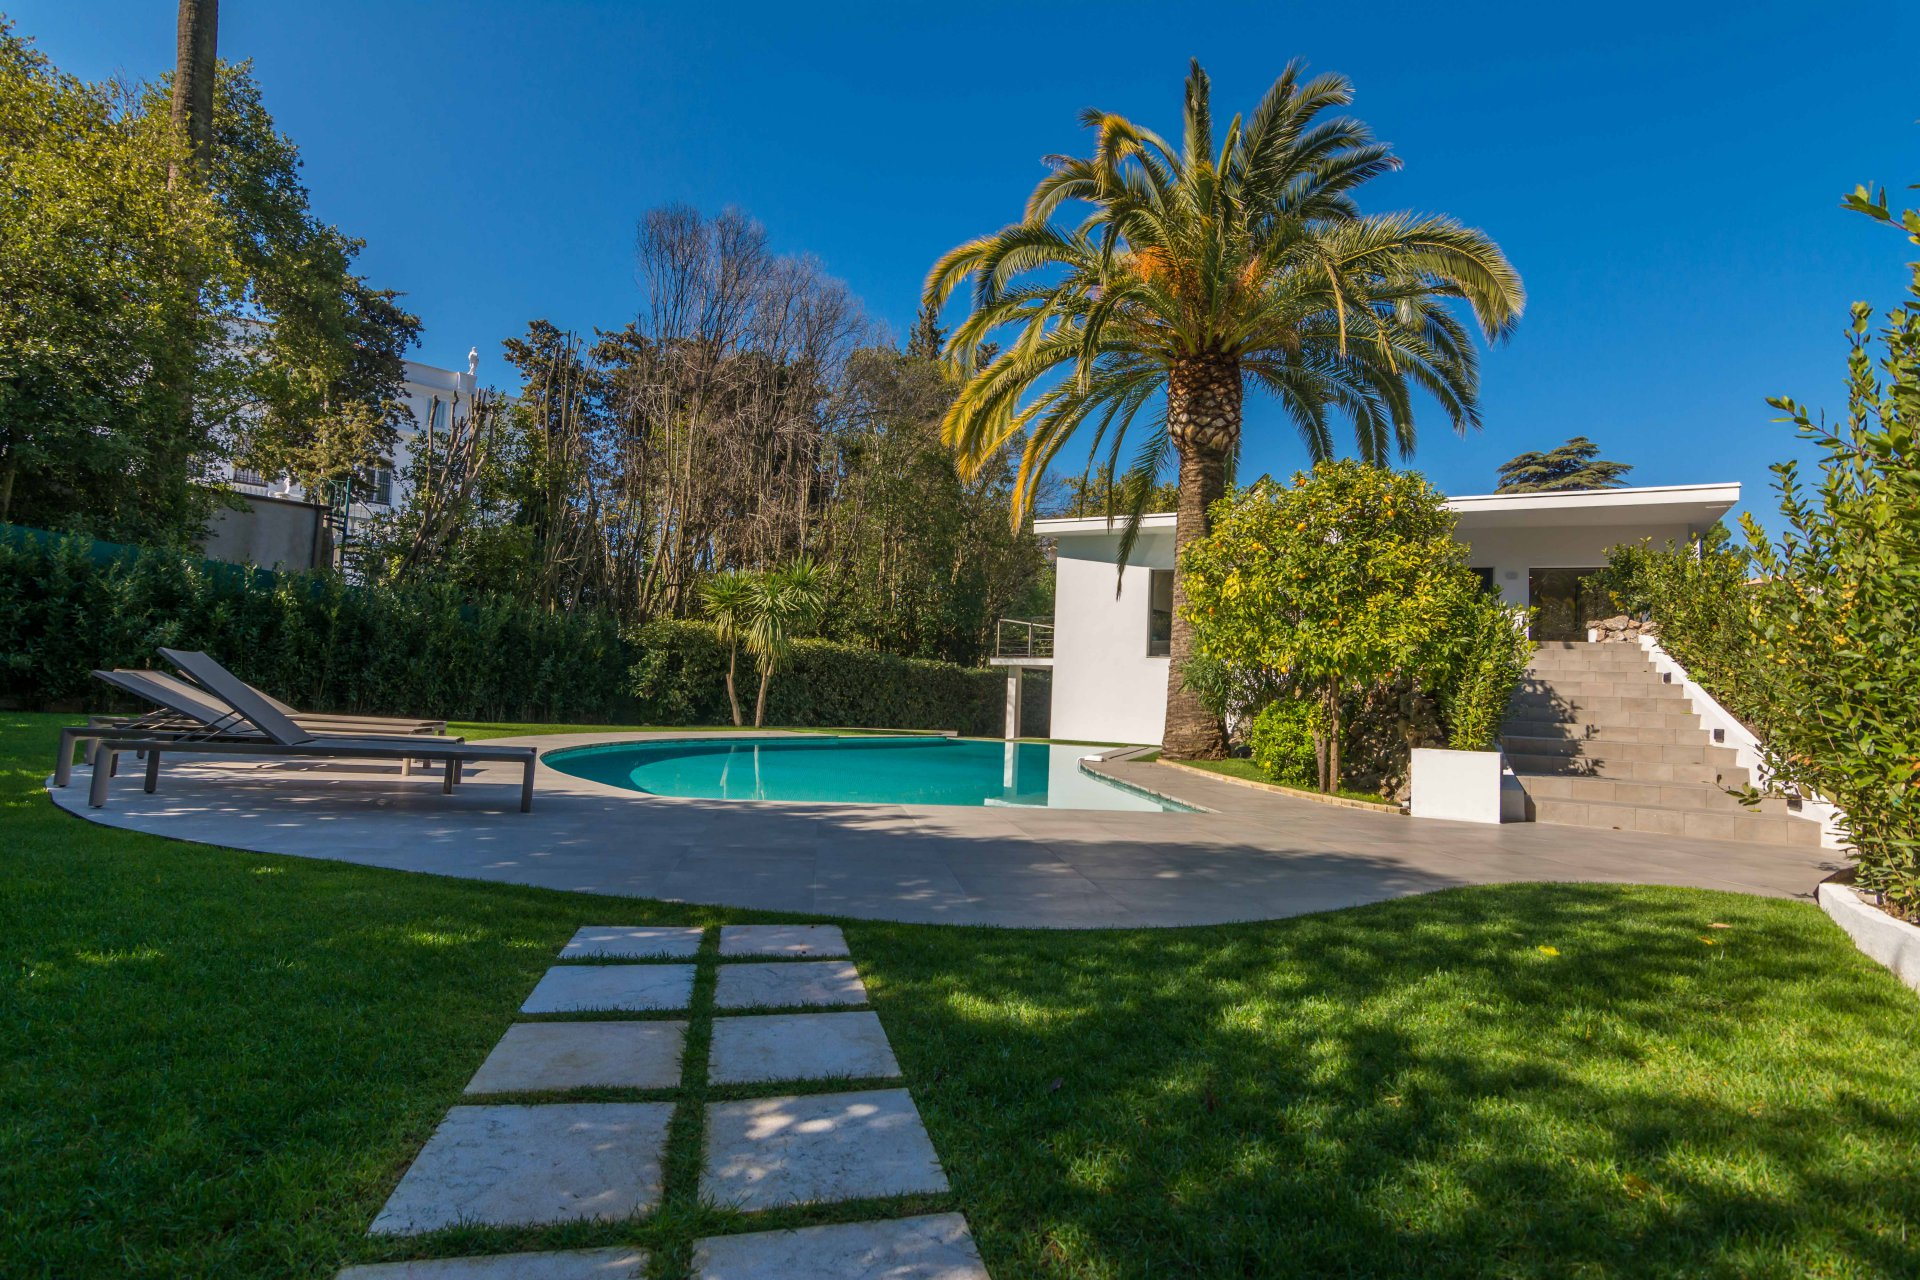 CANNES BENEFIAT CONTEMPORARY HOUSE 260M²